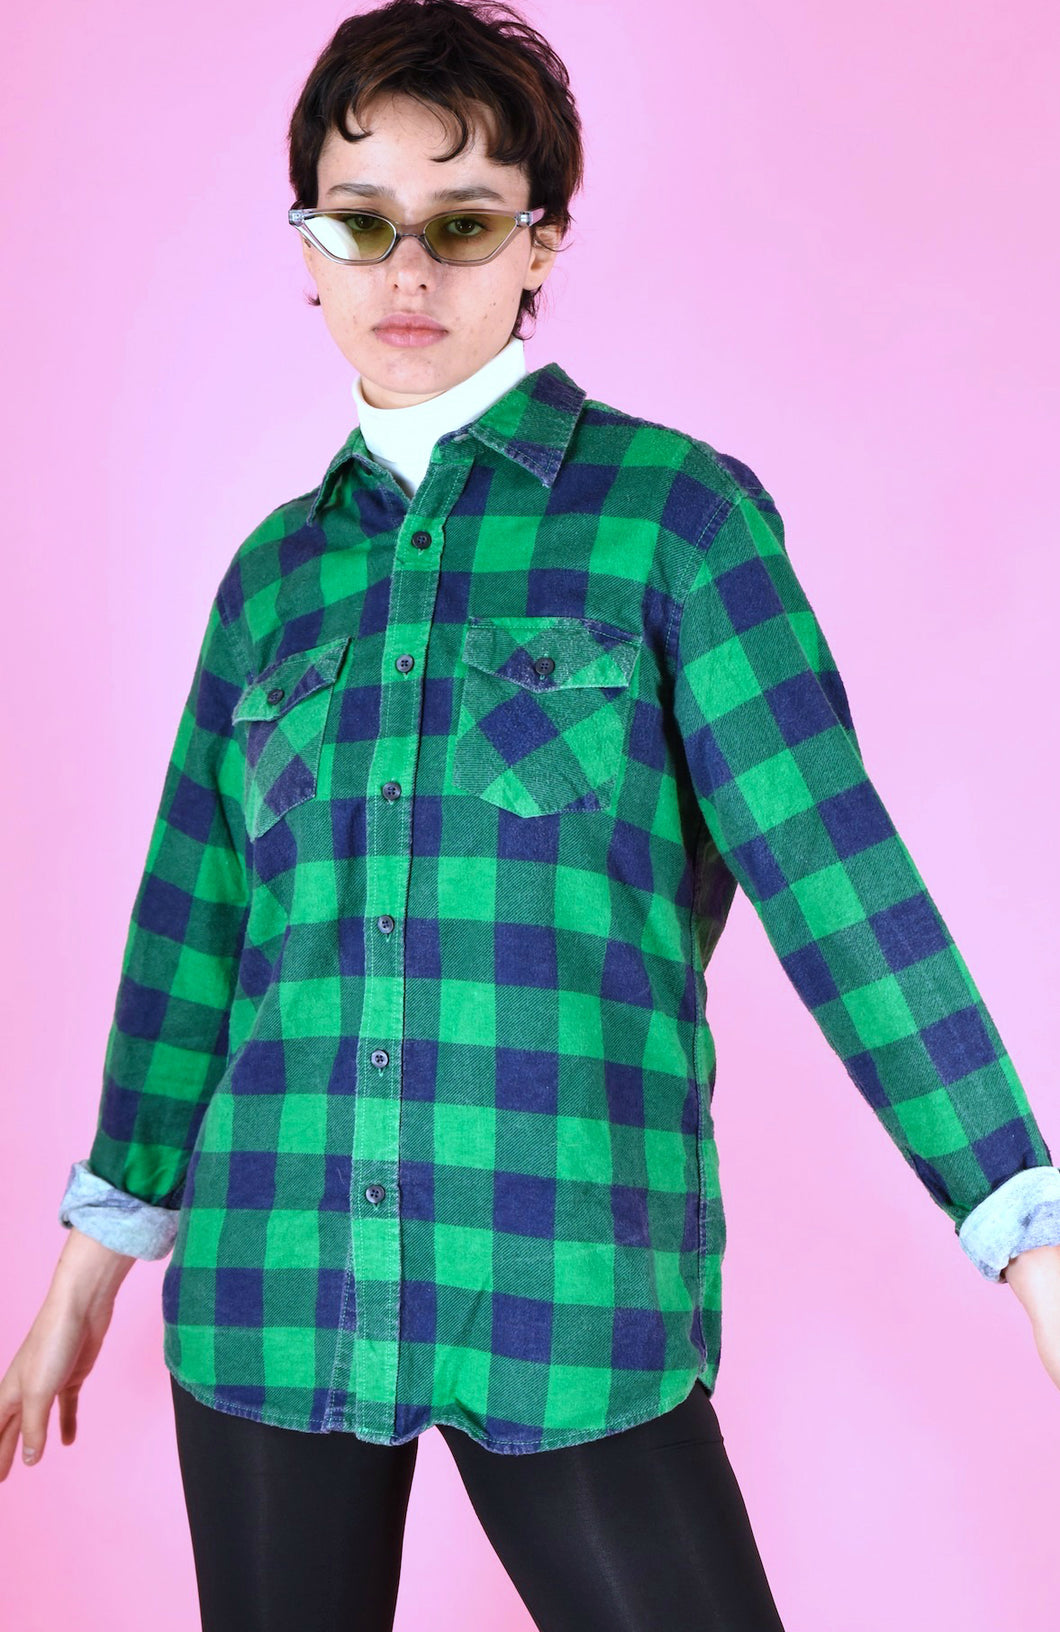 Vintage 90s Flannel Shirt Check Green Blue in M/L